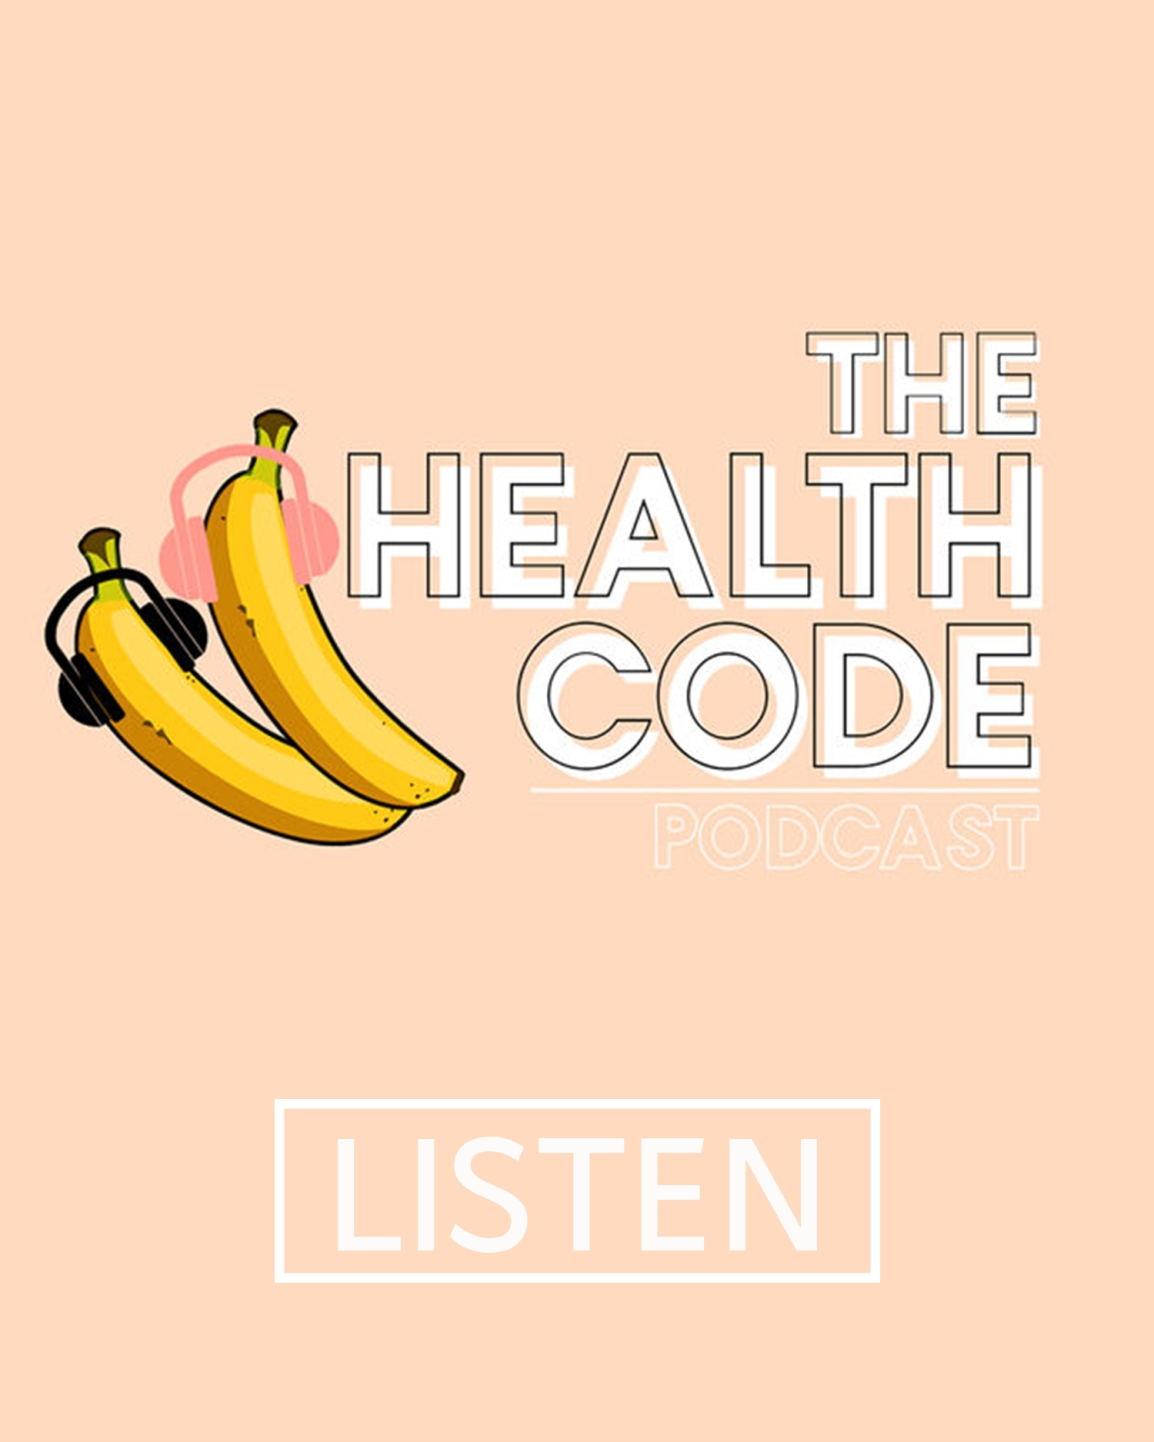 LL-C-TOP-3-PODCASTS-THE-HEALTH-CODE